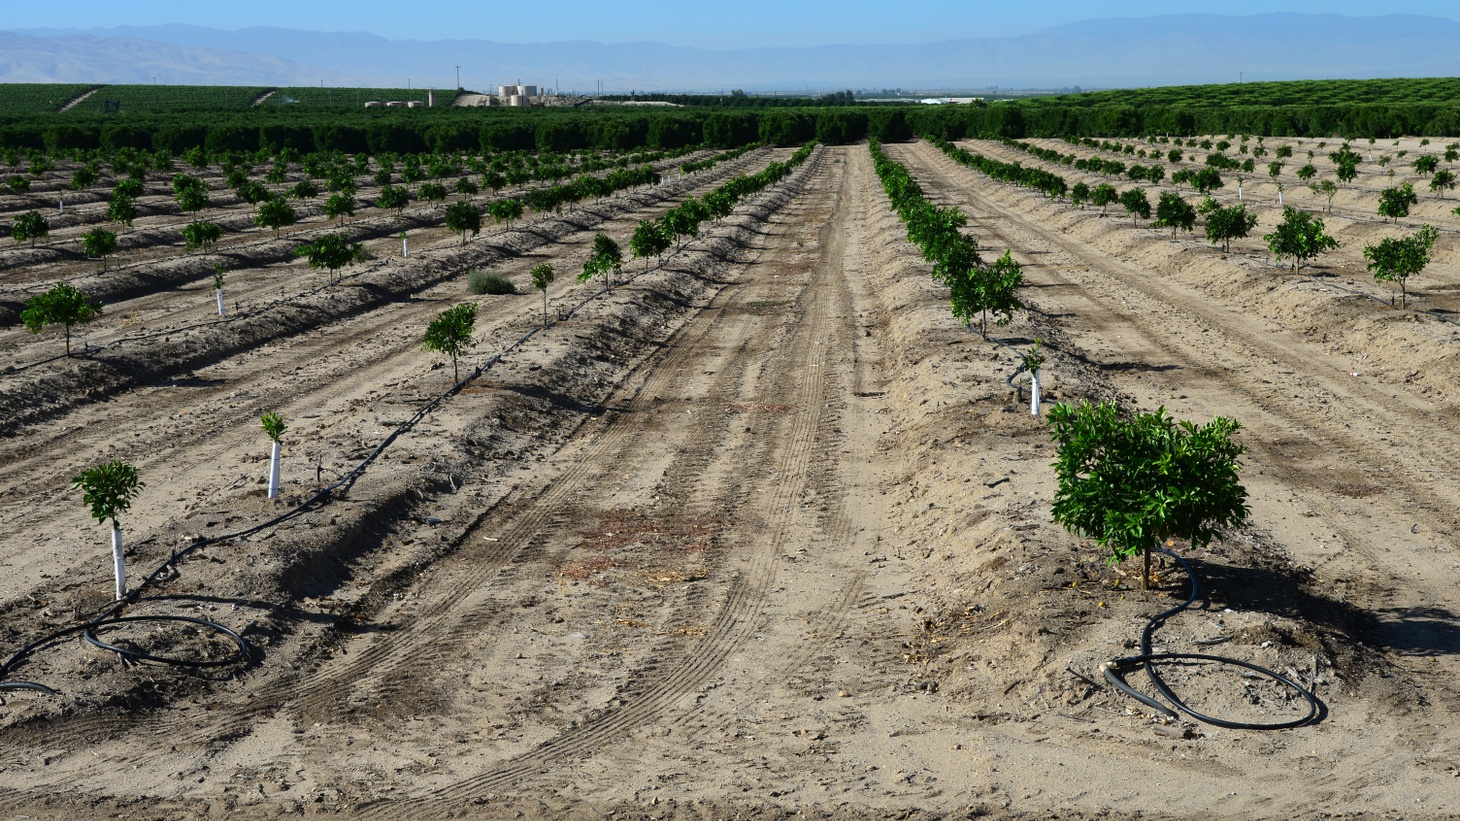 Almond trees on a San Joaquin Valley farm are watered with a drip irrigation system during drought in California.